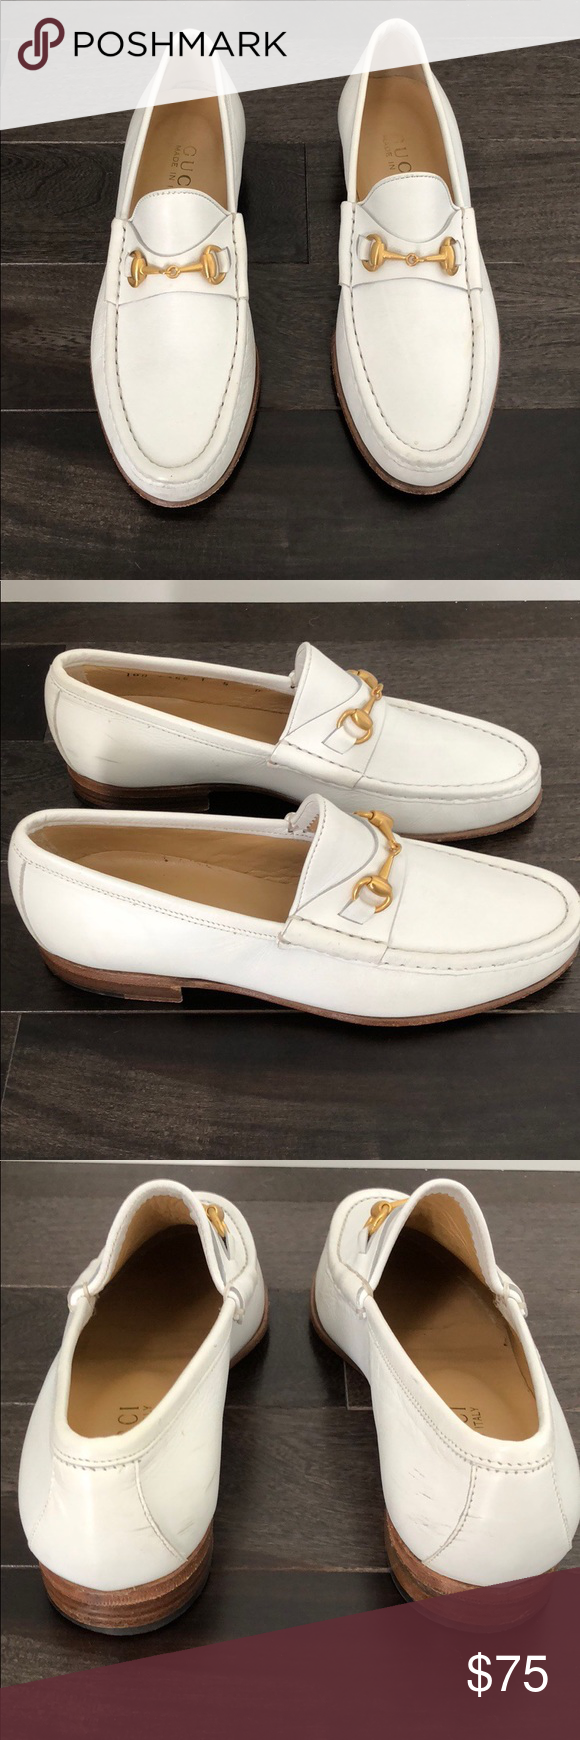 dc05d20f9 Vintage Gucci Leather Horse-bit Loafers Women's Vintage GUCCI White Leather  Loafers with Brushed Gold Horsebit Vamps. Classics. Women's Size 5 B. Heel  3/4 ...